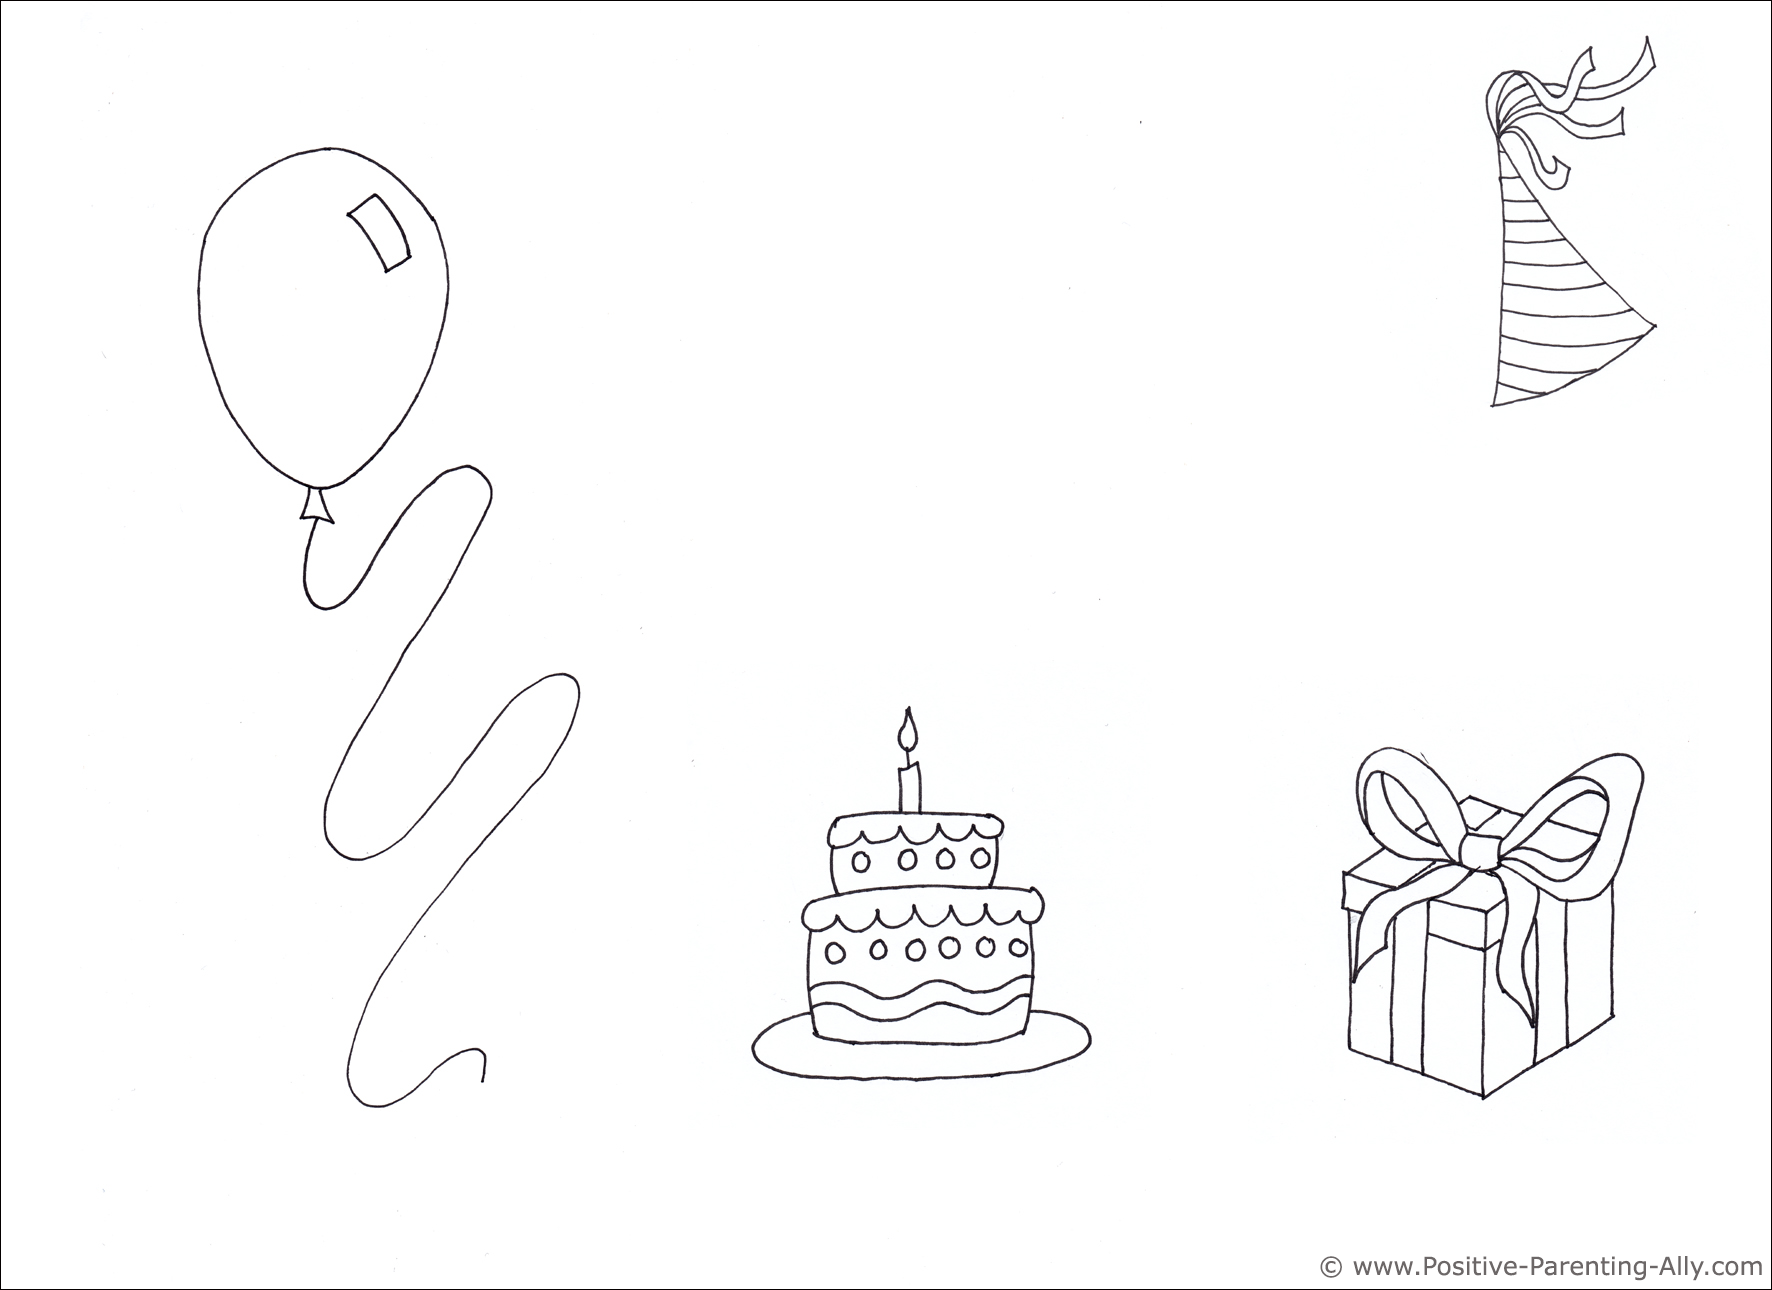 Example of birthday invitation drawing with plenty of white space.